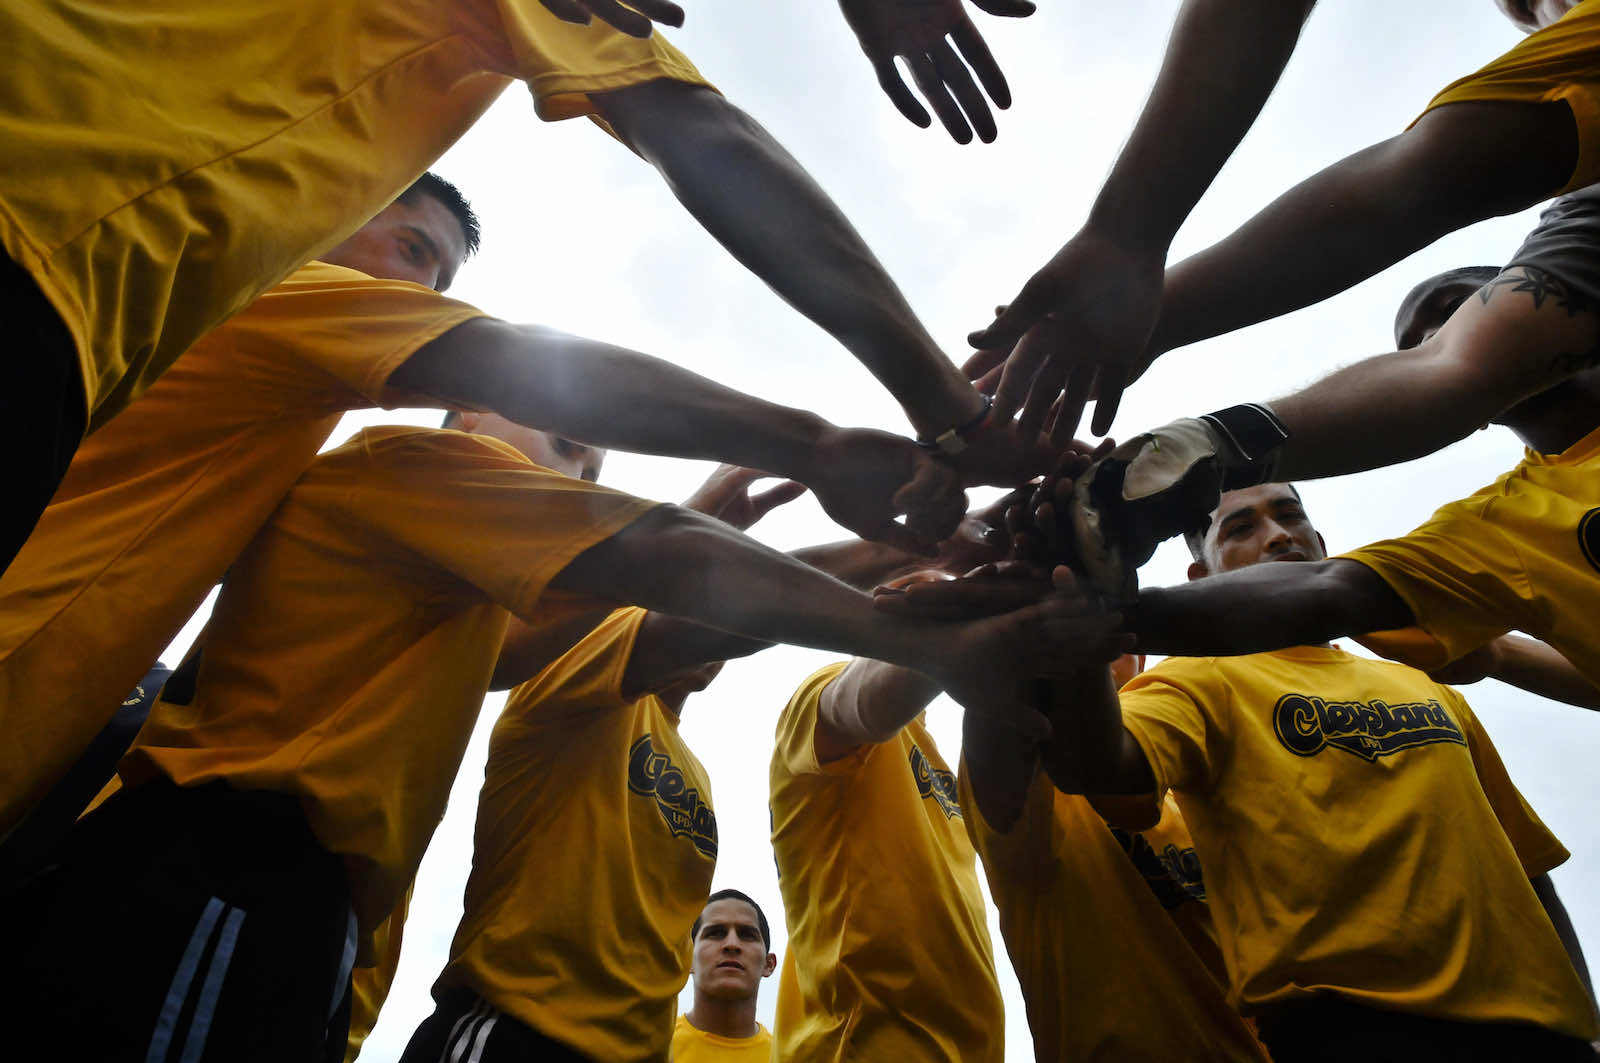 Teaming up for an exhibition soccer match in Lae, PNG, during the 2011 Pacific Partnership initiative by the US Navy (US Navy/Flickr)